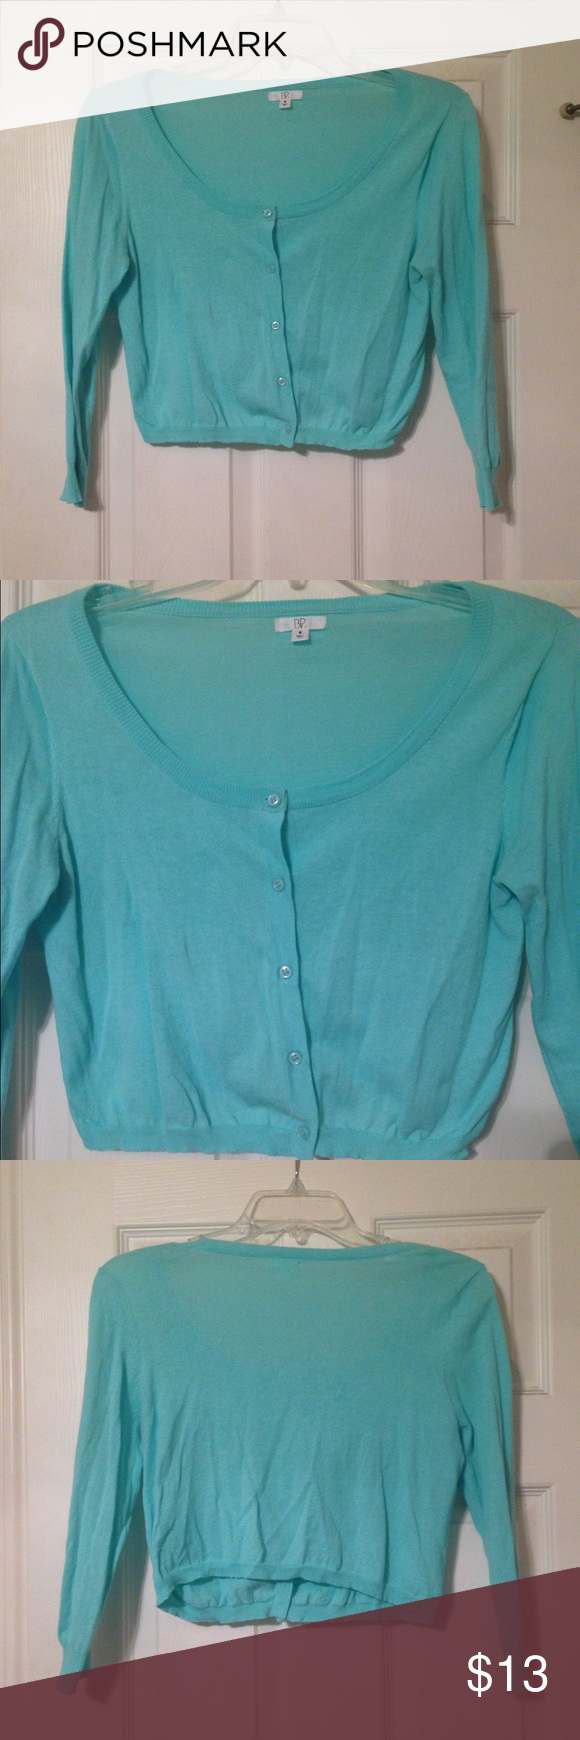 BP Nordstrom Mint Cropped Cardigan Medium Beautiful mint cropped cardigan from the BP brand at Nordstrom. Size: Medium. Nordstrom Sweaters Cardigans